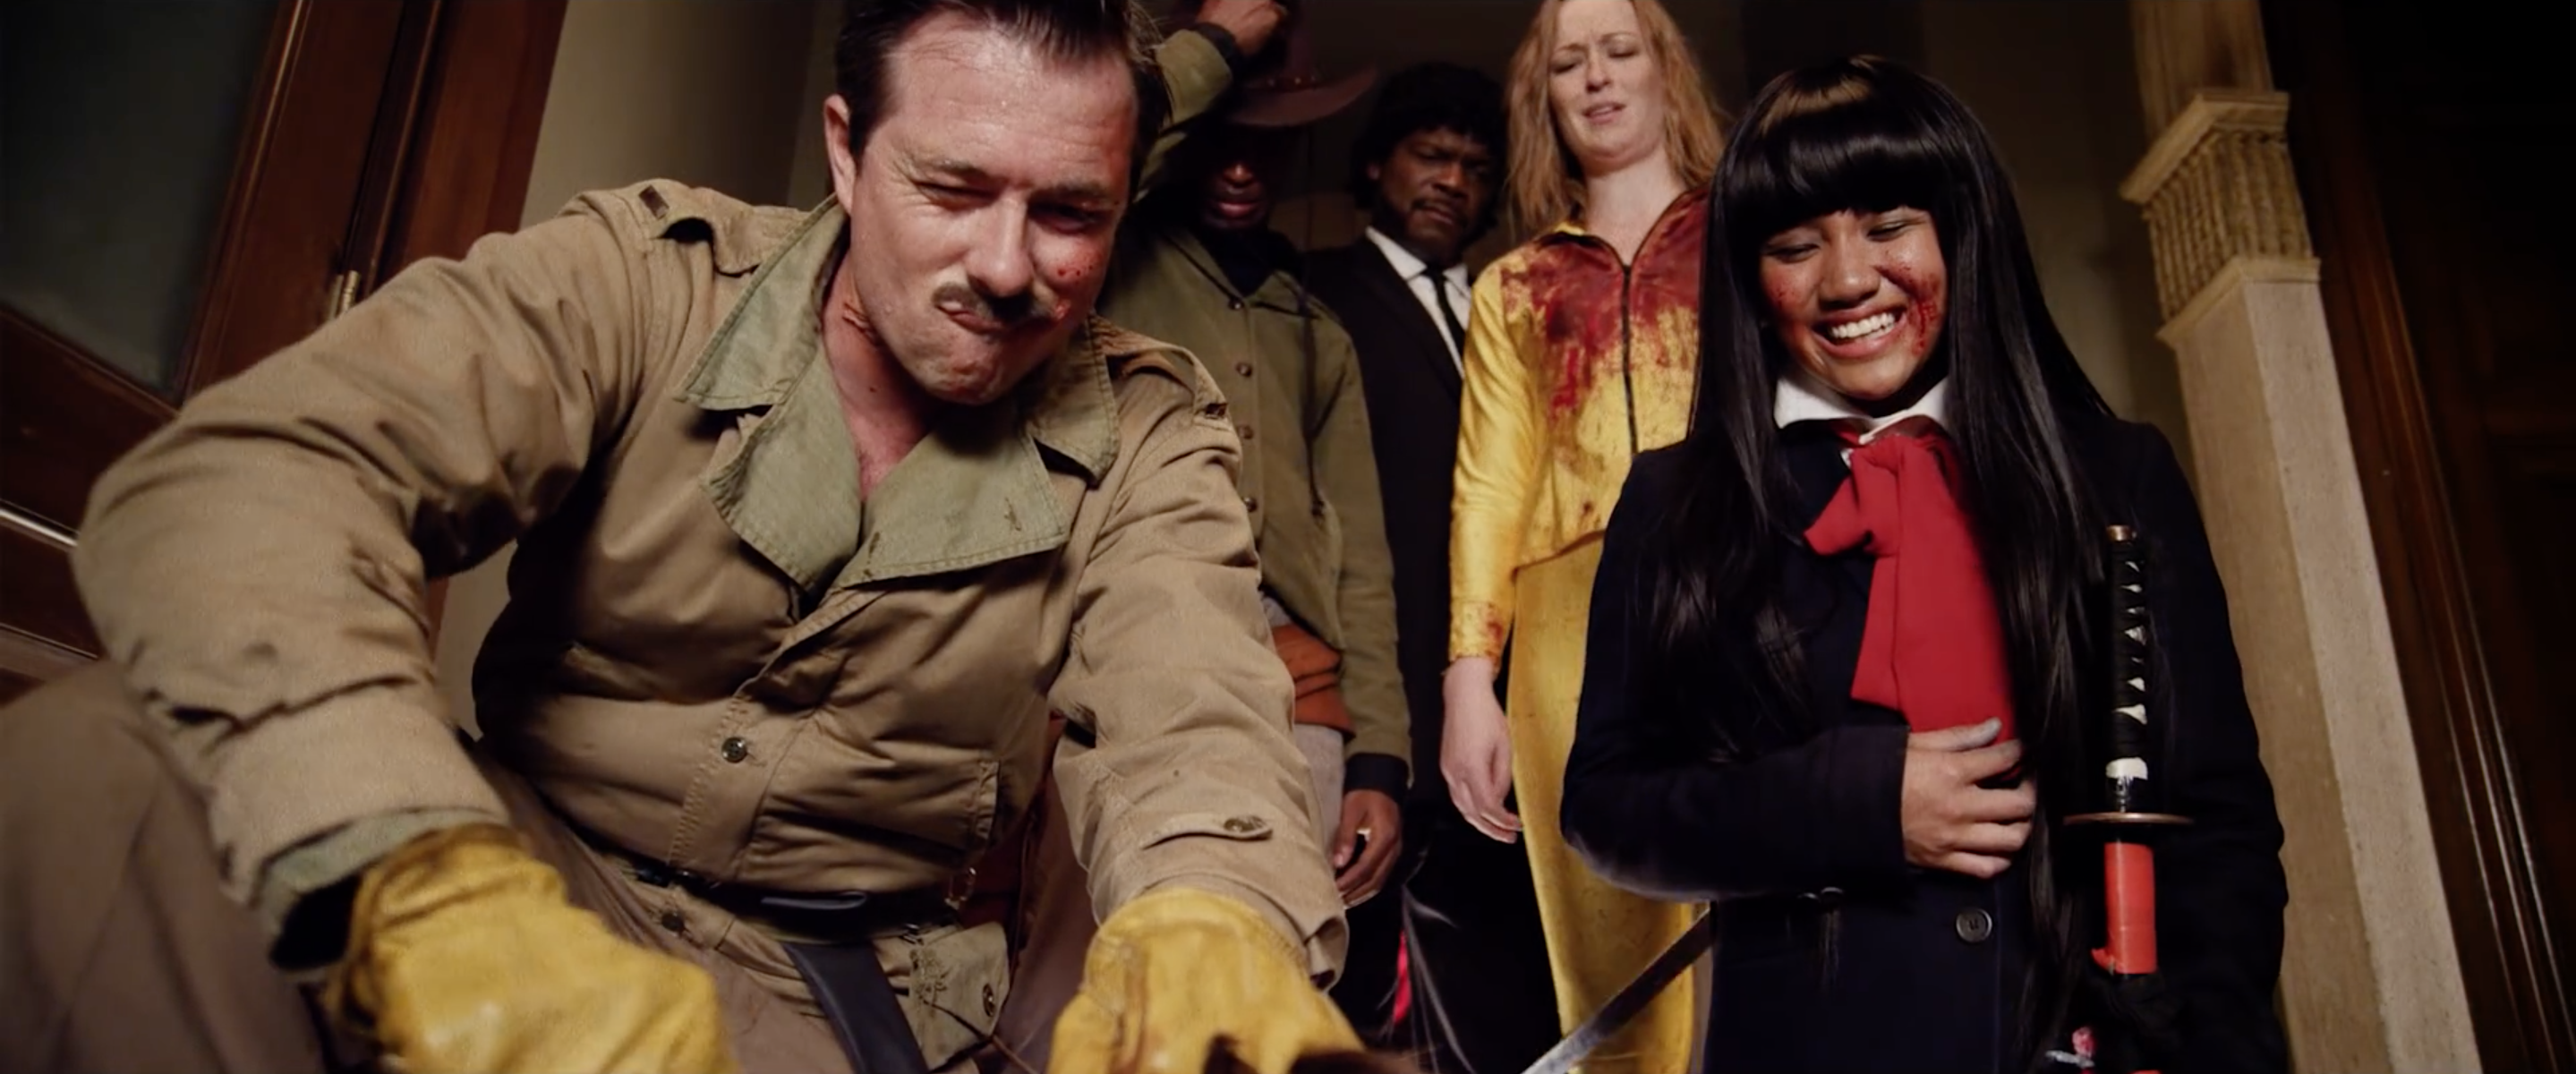 WATCH: If 'Suicide Squad' Was Directed by Quentin Tarantino